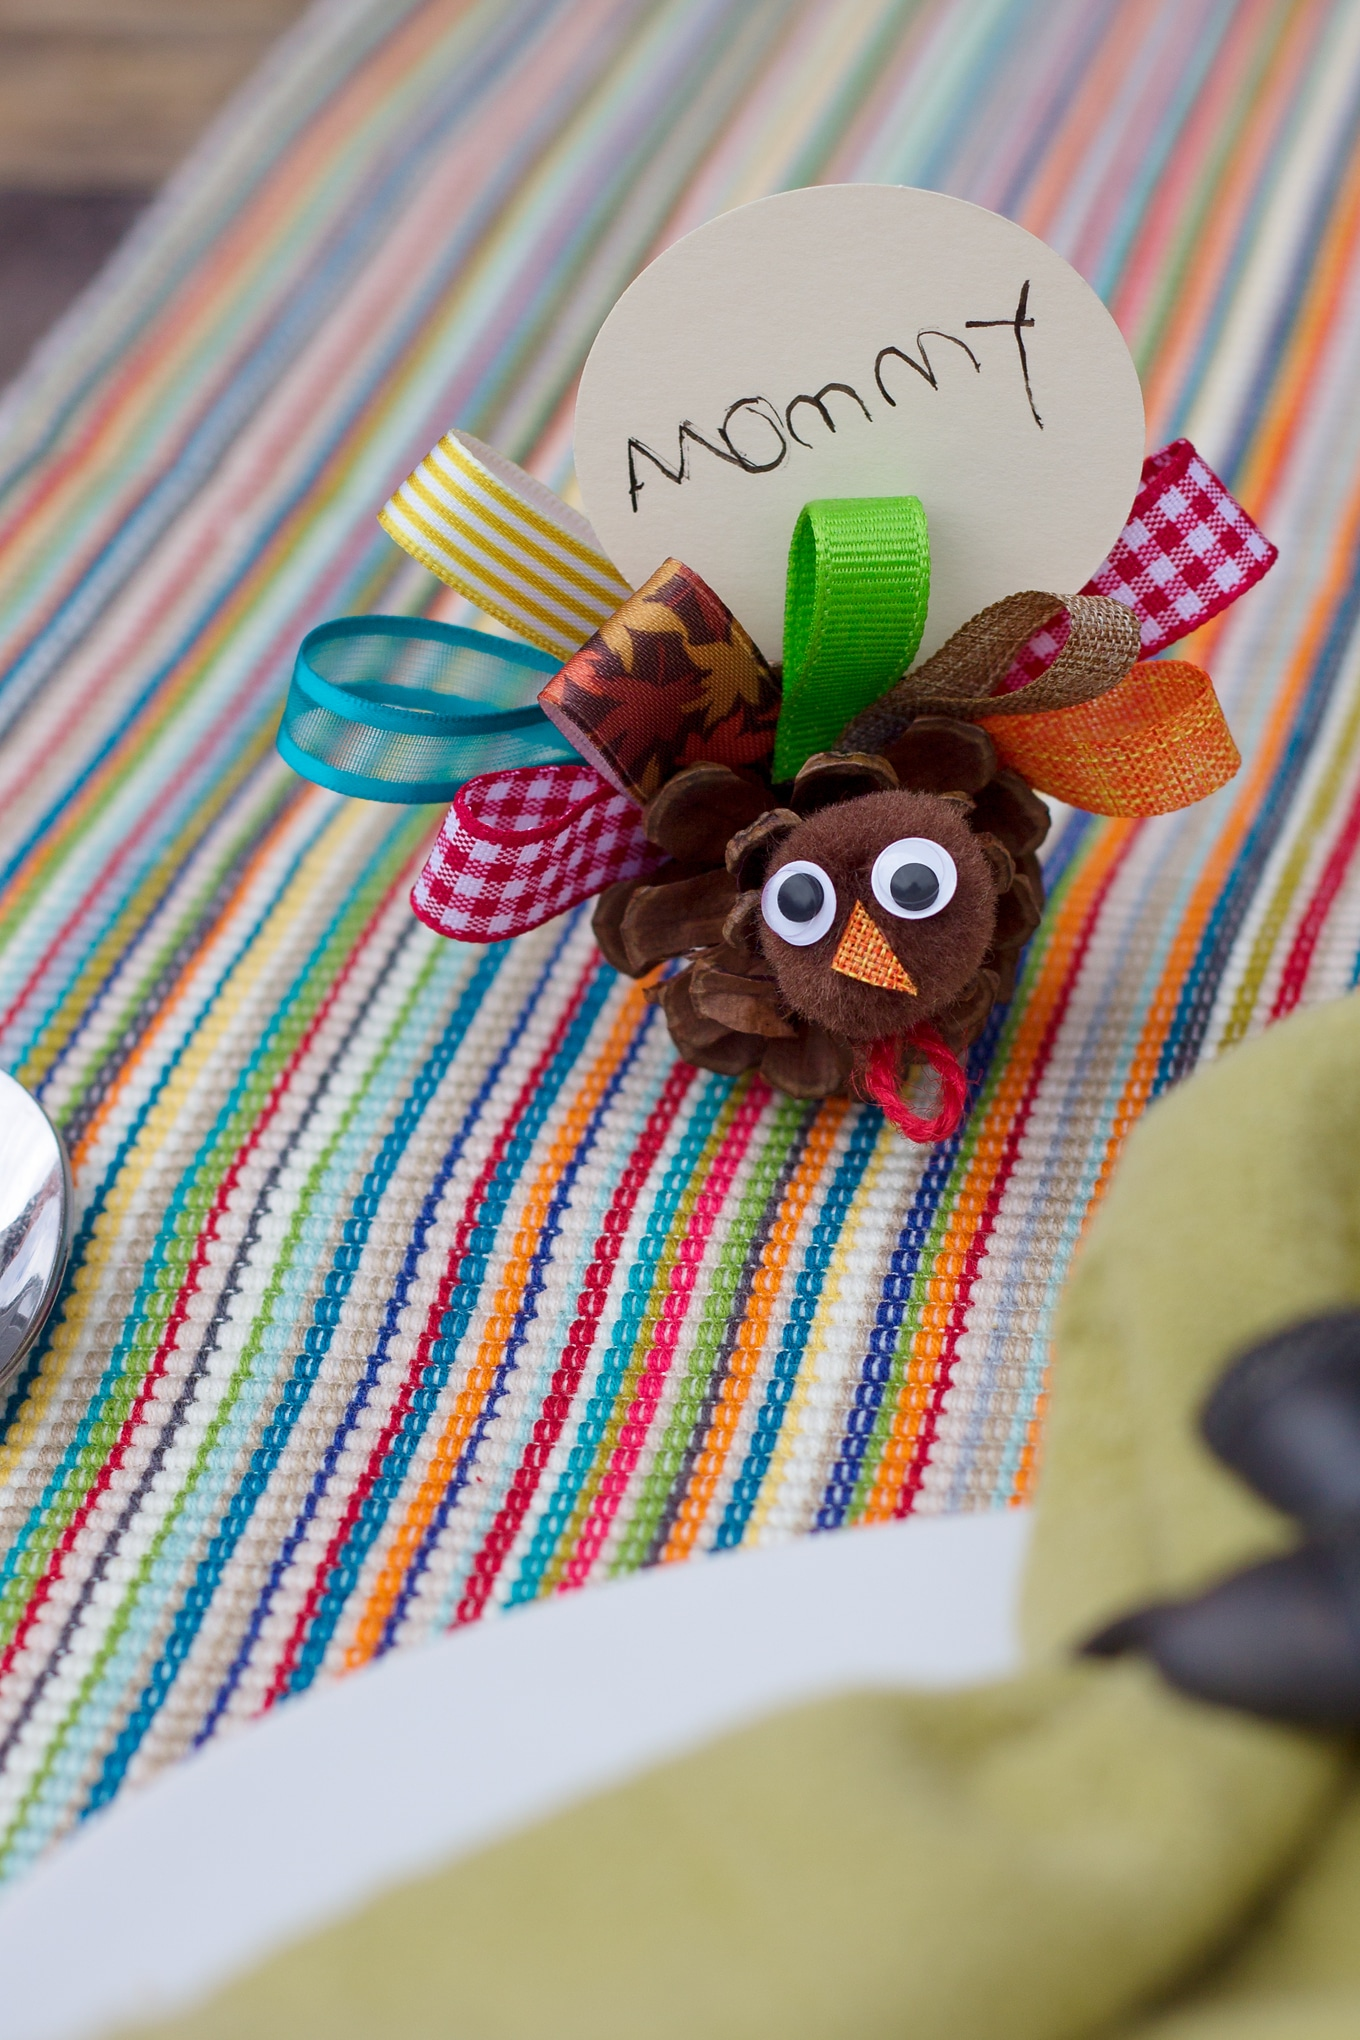 Just in time for Thanksgiving, learn how to make Scrap Ribbon Pine Cone Turkeys from ribbon, pine cones, and pom poms. It's the perfect nature craft for kids!